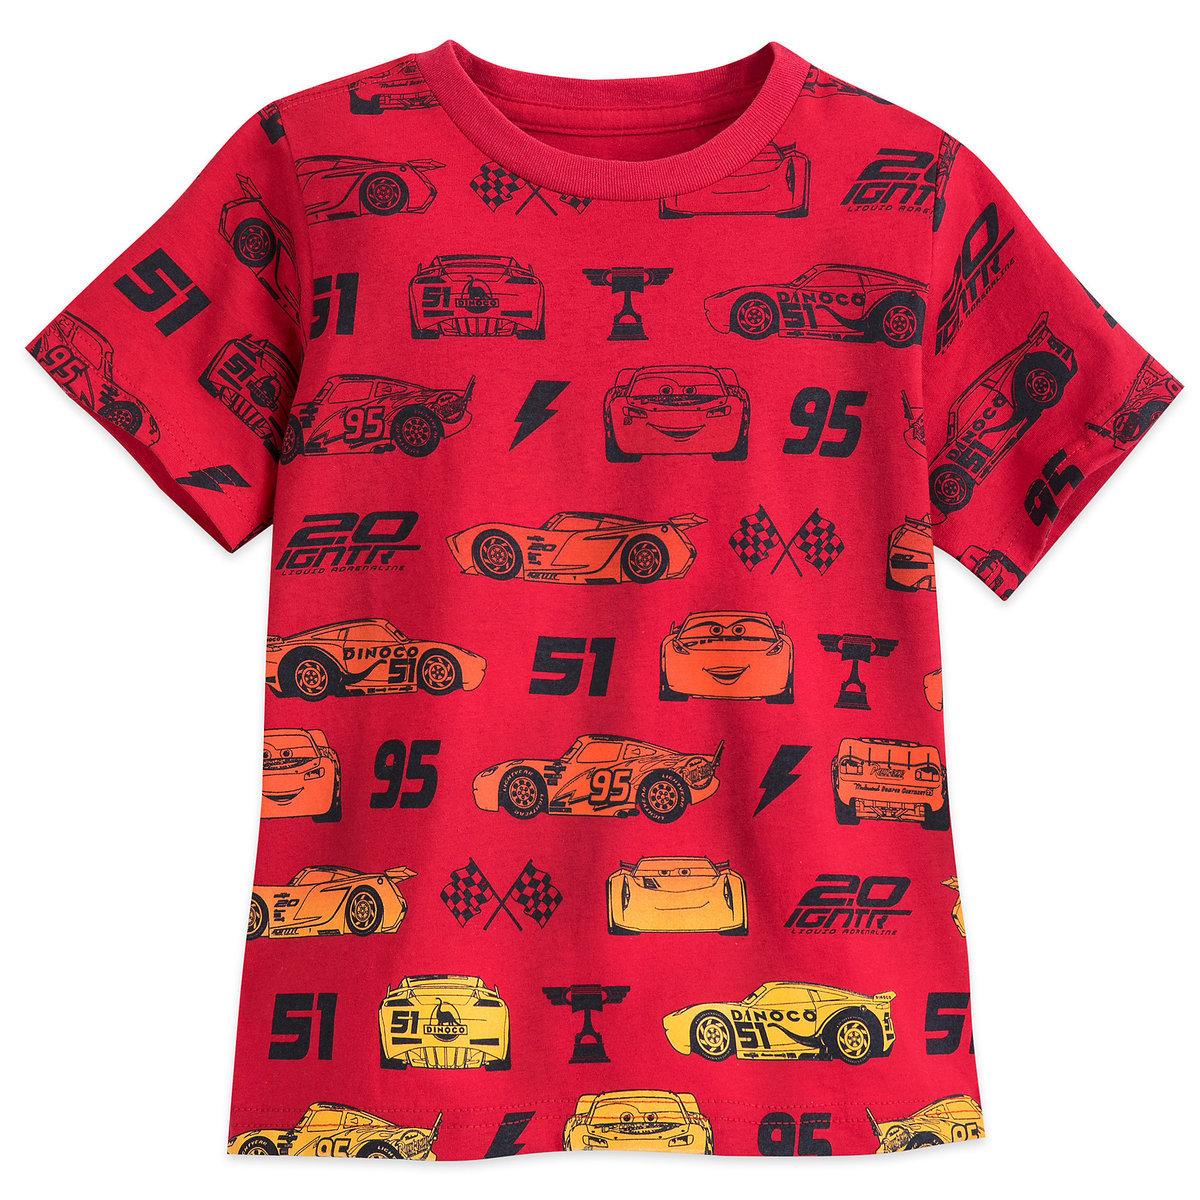 e730fc711 Product Image of Cars 3 T-Shirt for Boys # 1